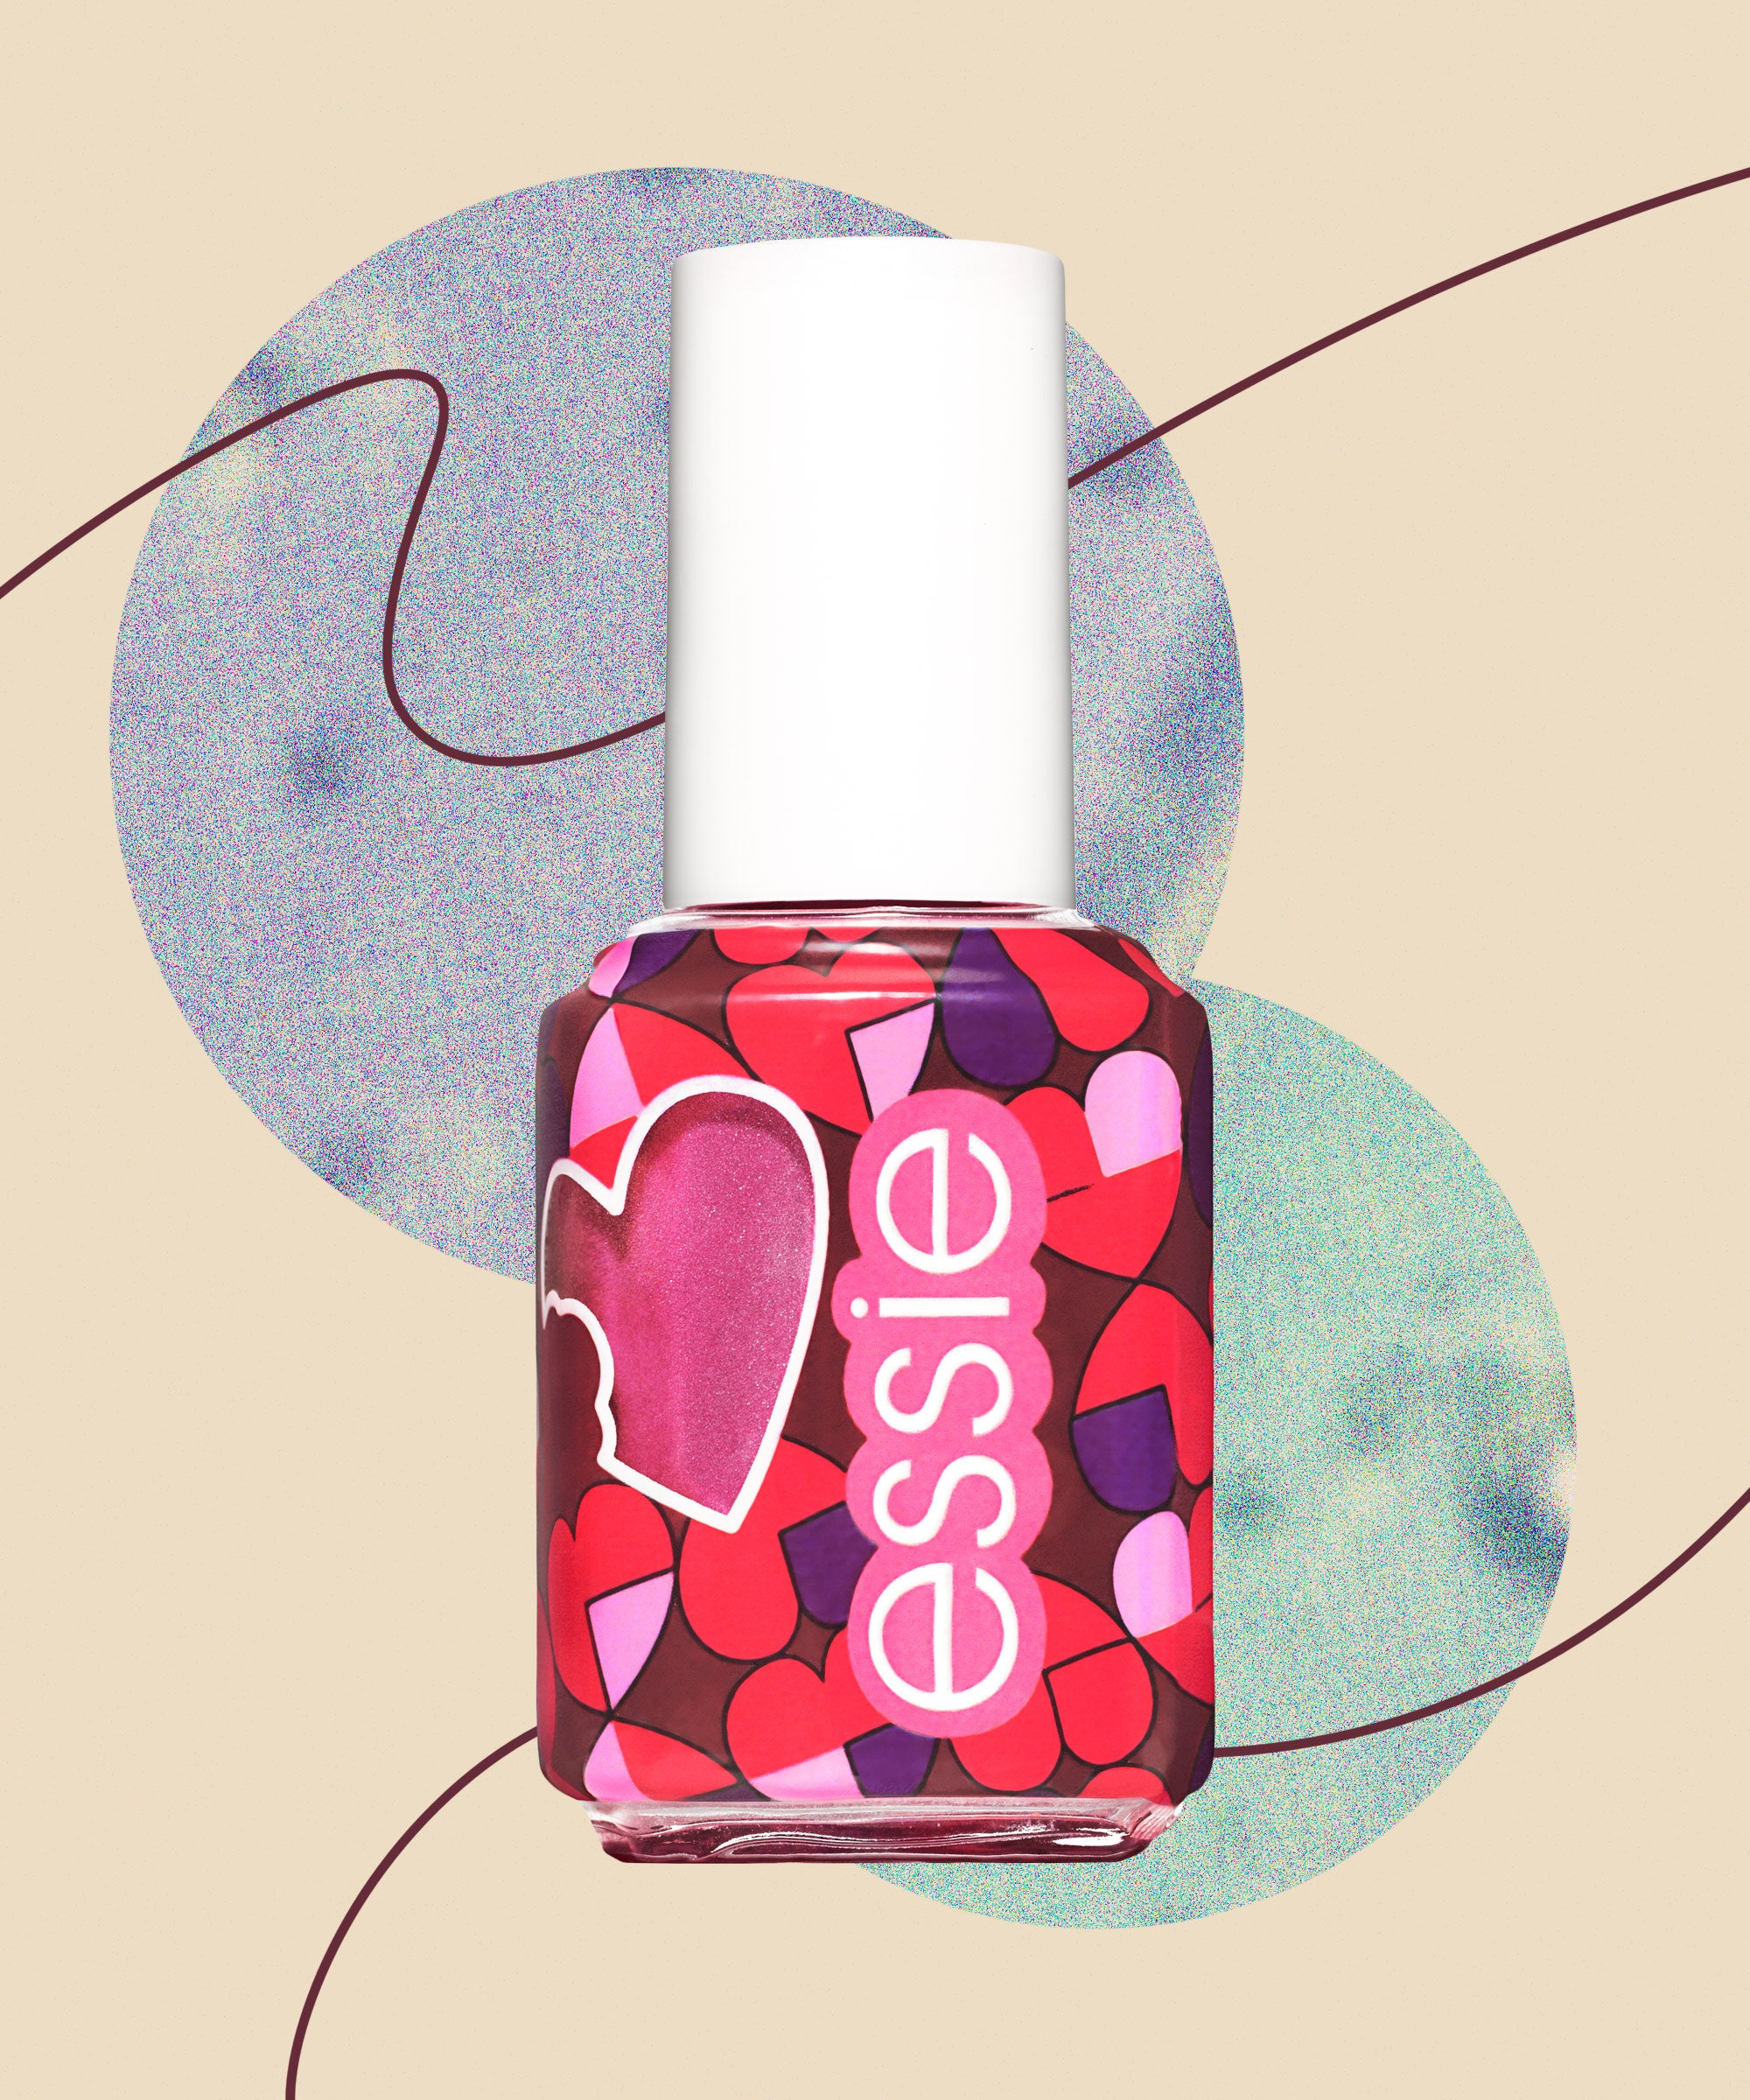 Essie Just Dropped 6 New Nail Shades Perfect For Valentine's Day